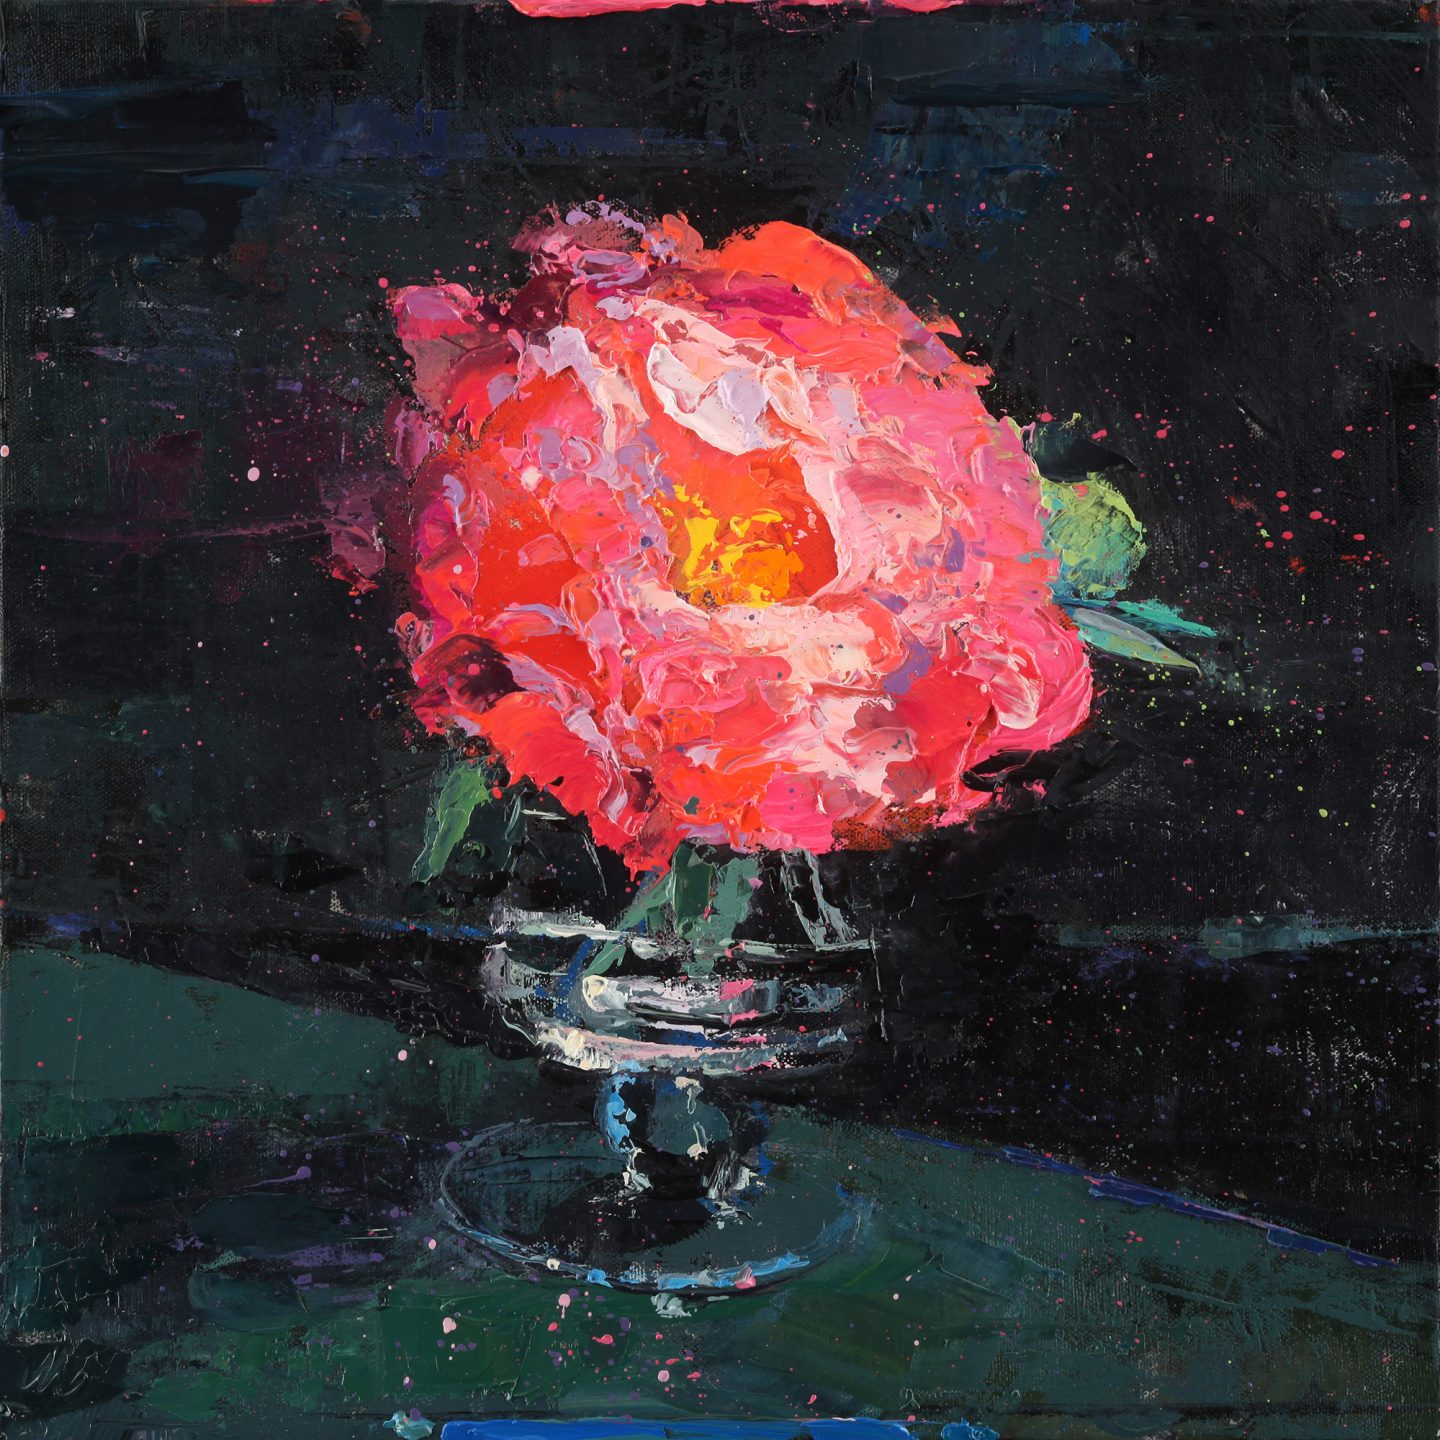 Meyer Peony and the NIght Sky